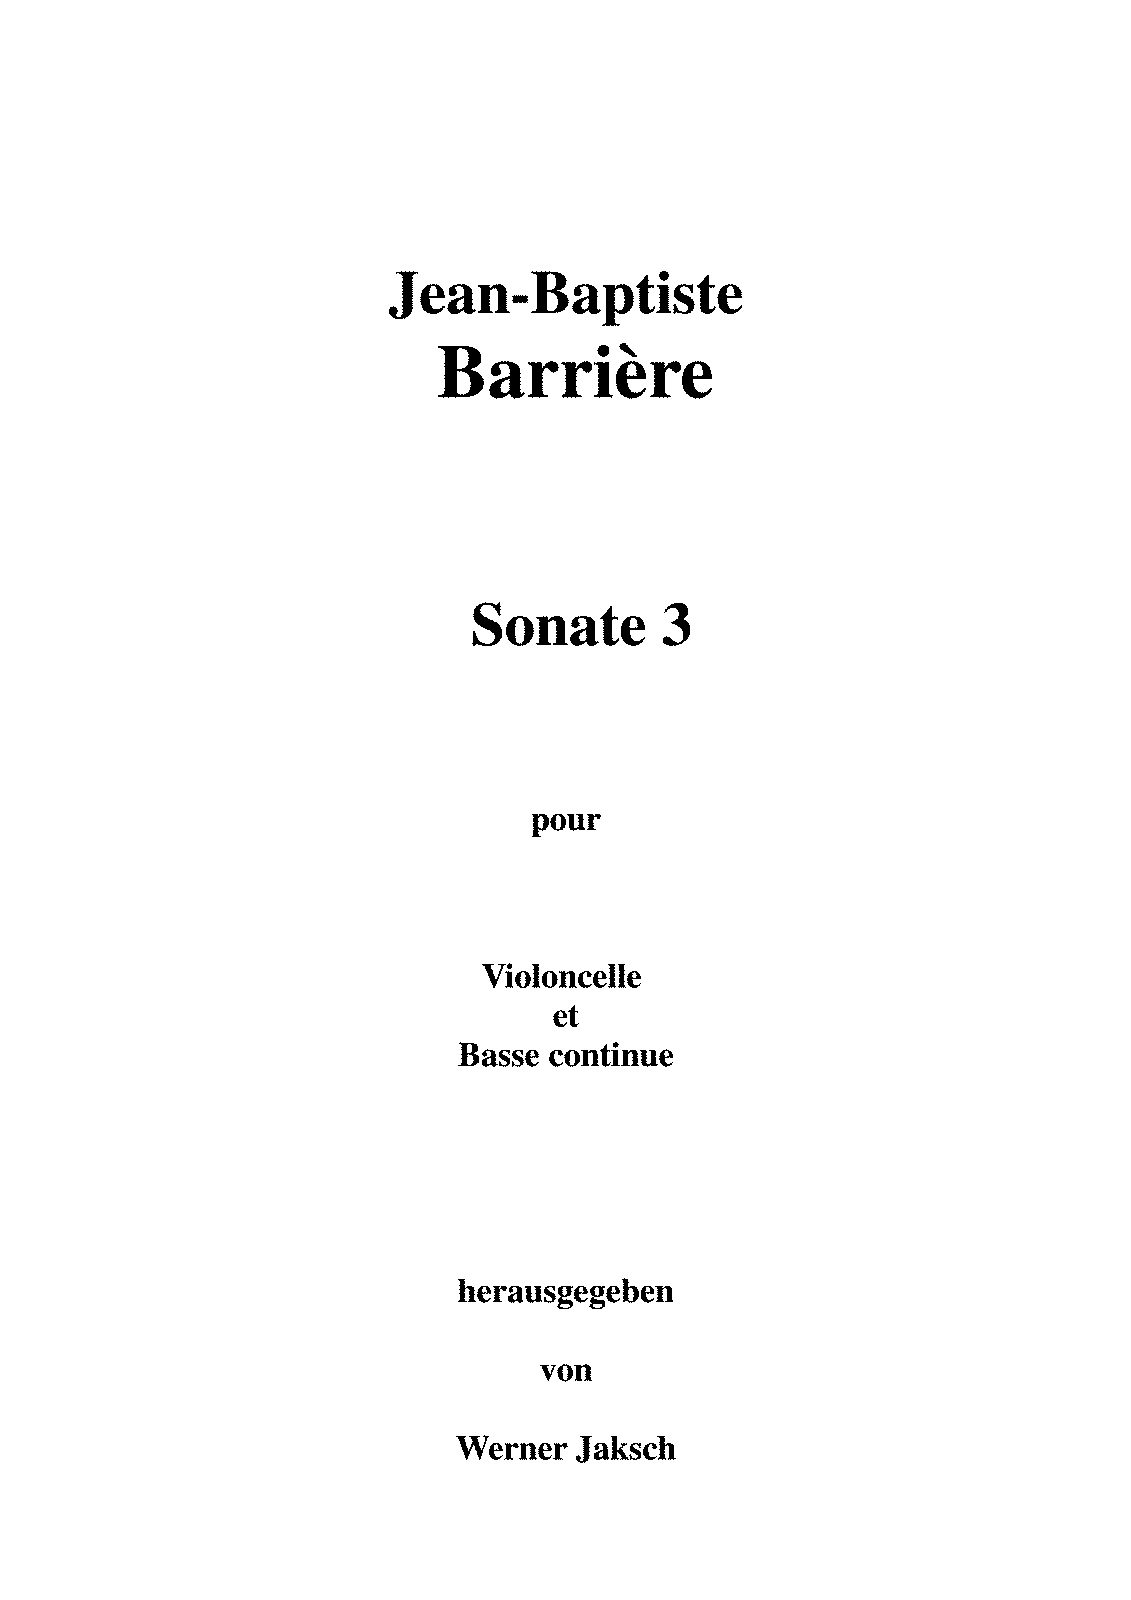 PMLP122854-barriere Part3.pdf